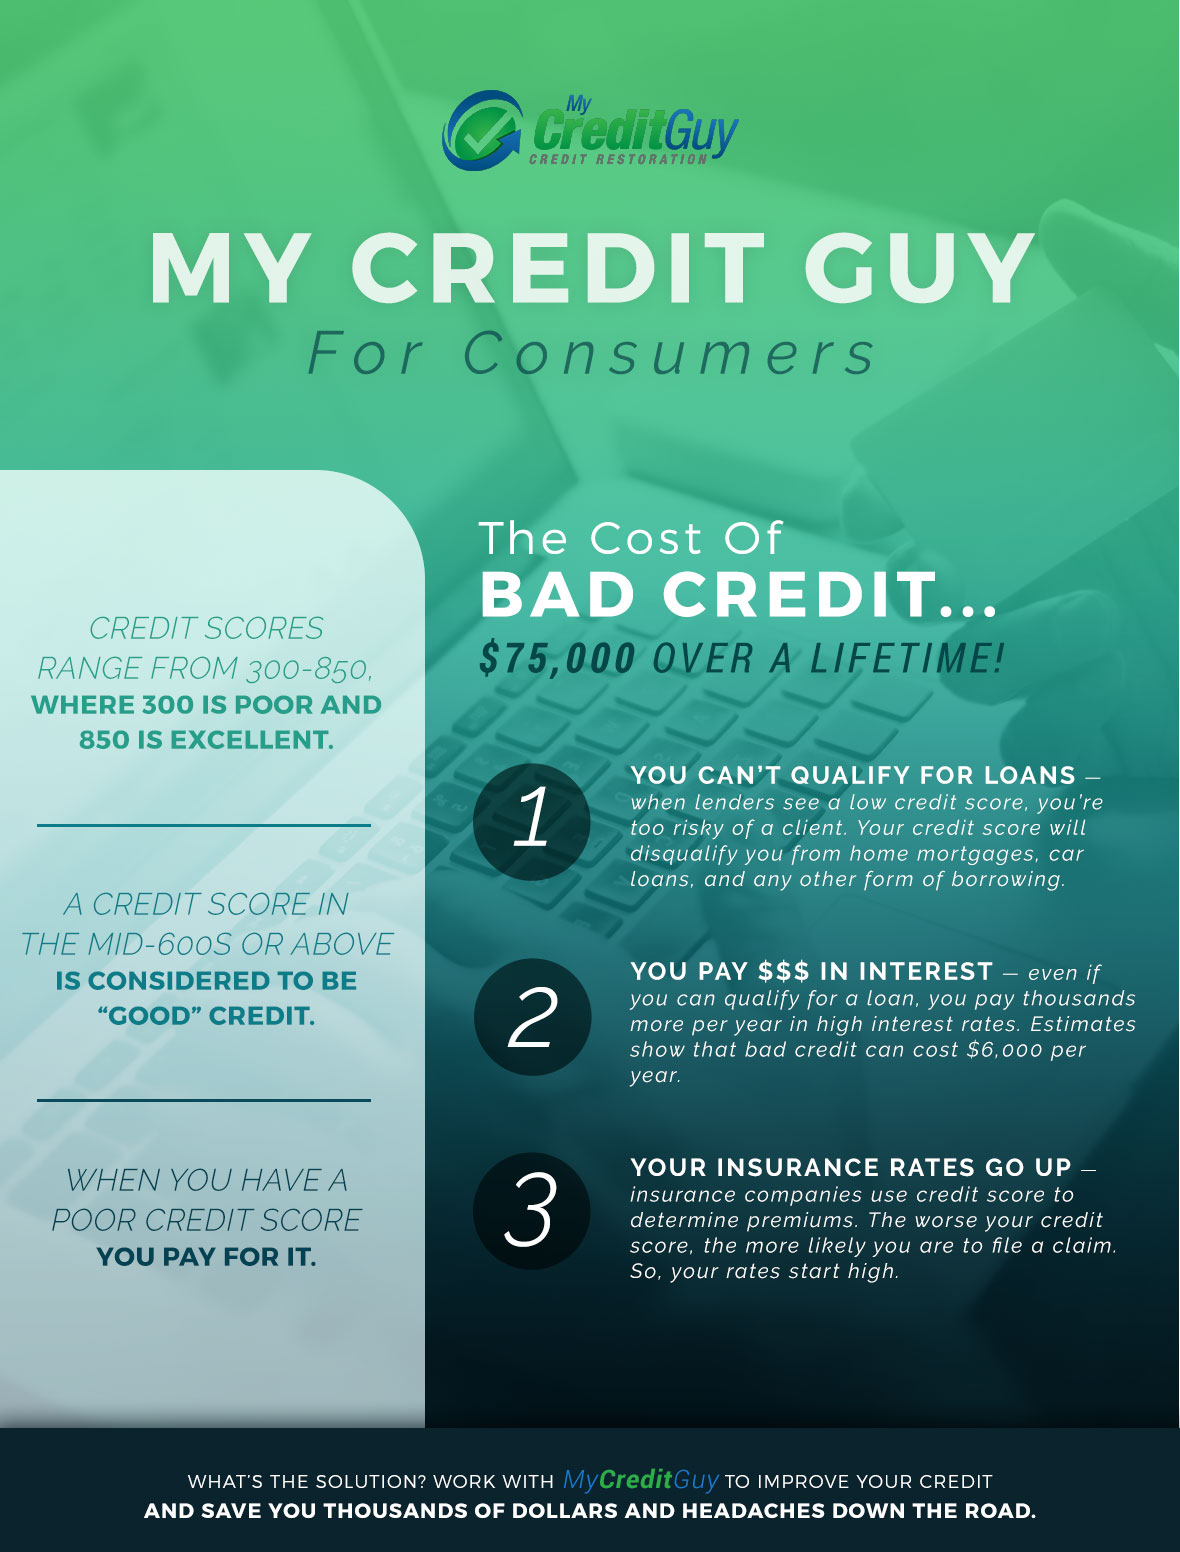 My Credit Guy - Our Consumer Services